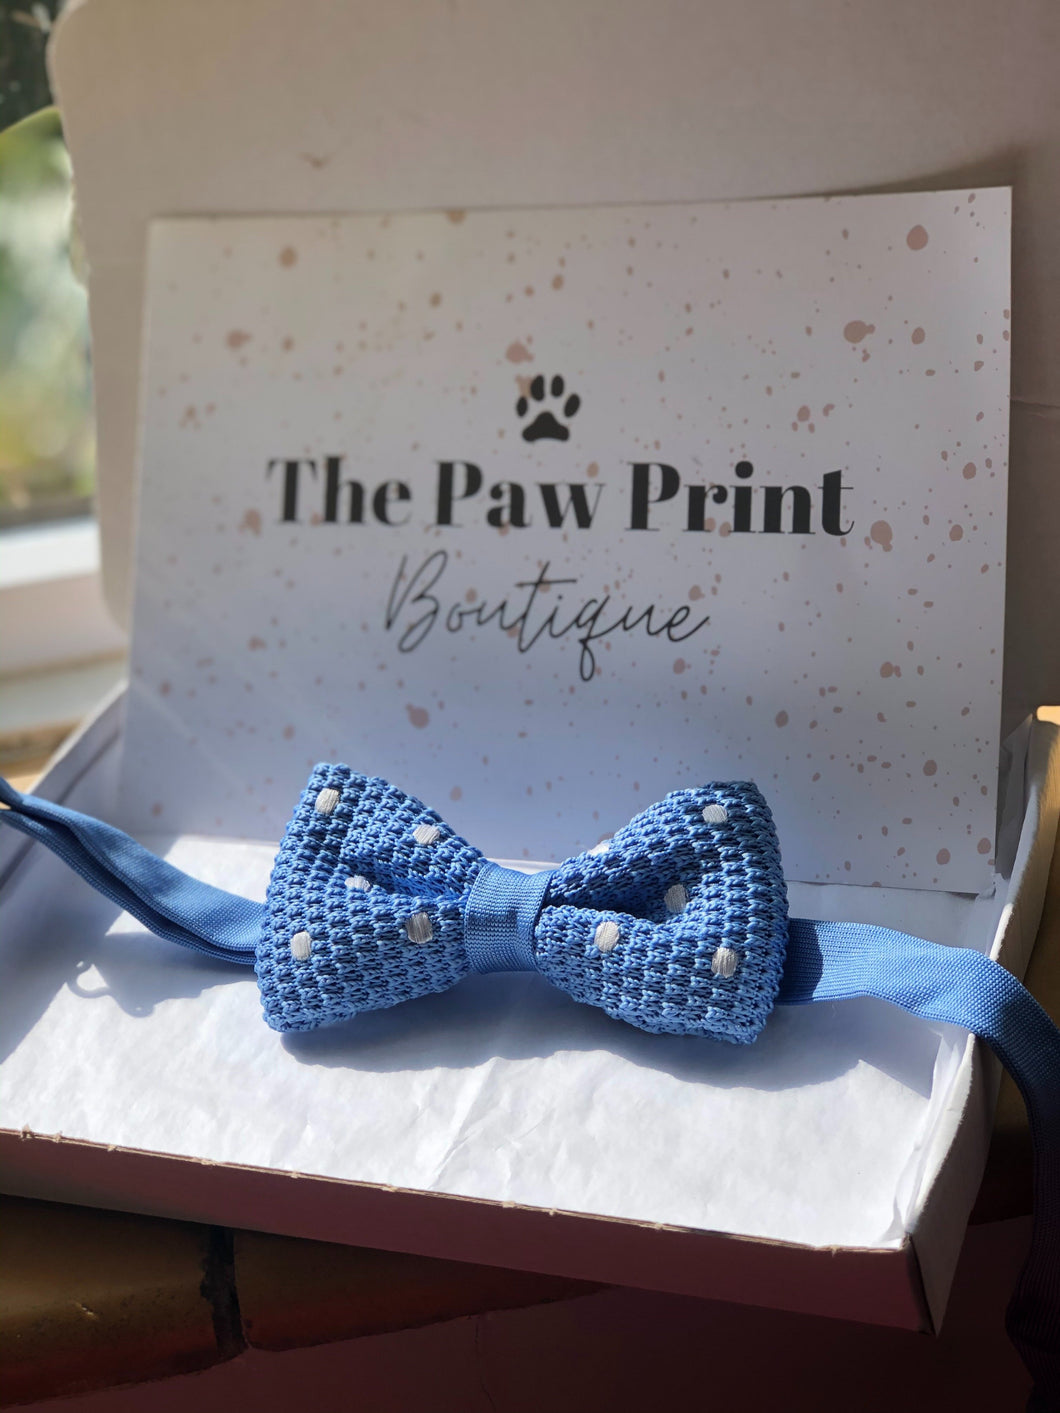 The Blue-Sky Bow Tie